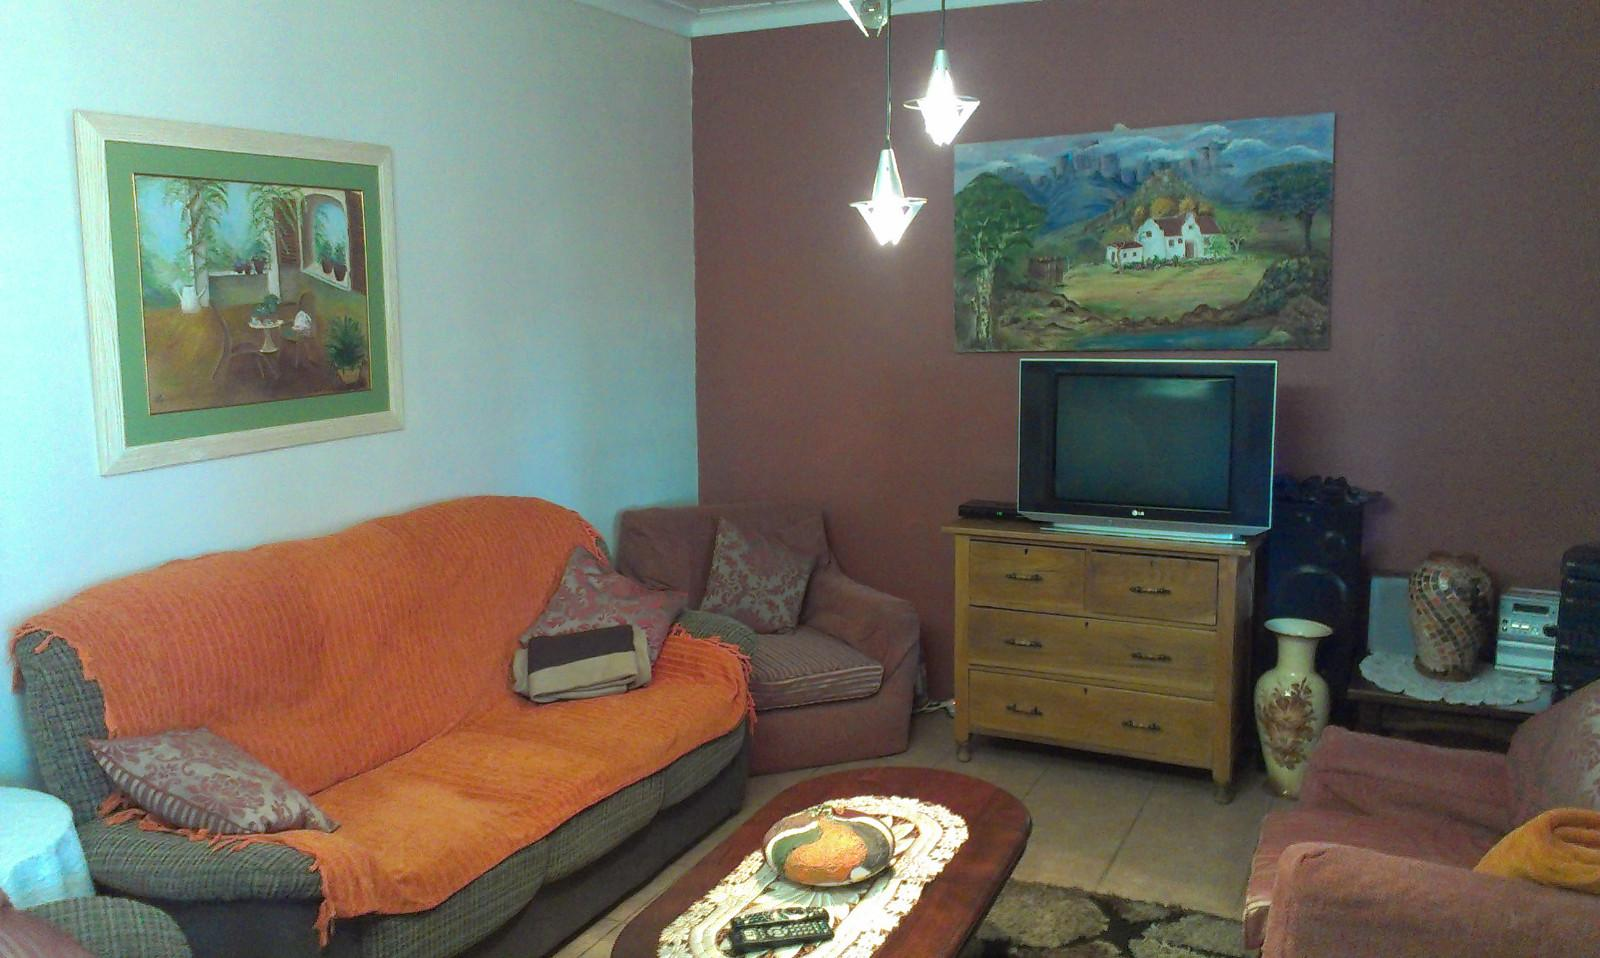 Vyfhoek property for sale. Ref No: 13350093. Picture no 9